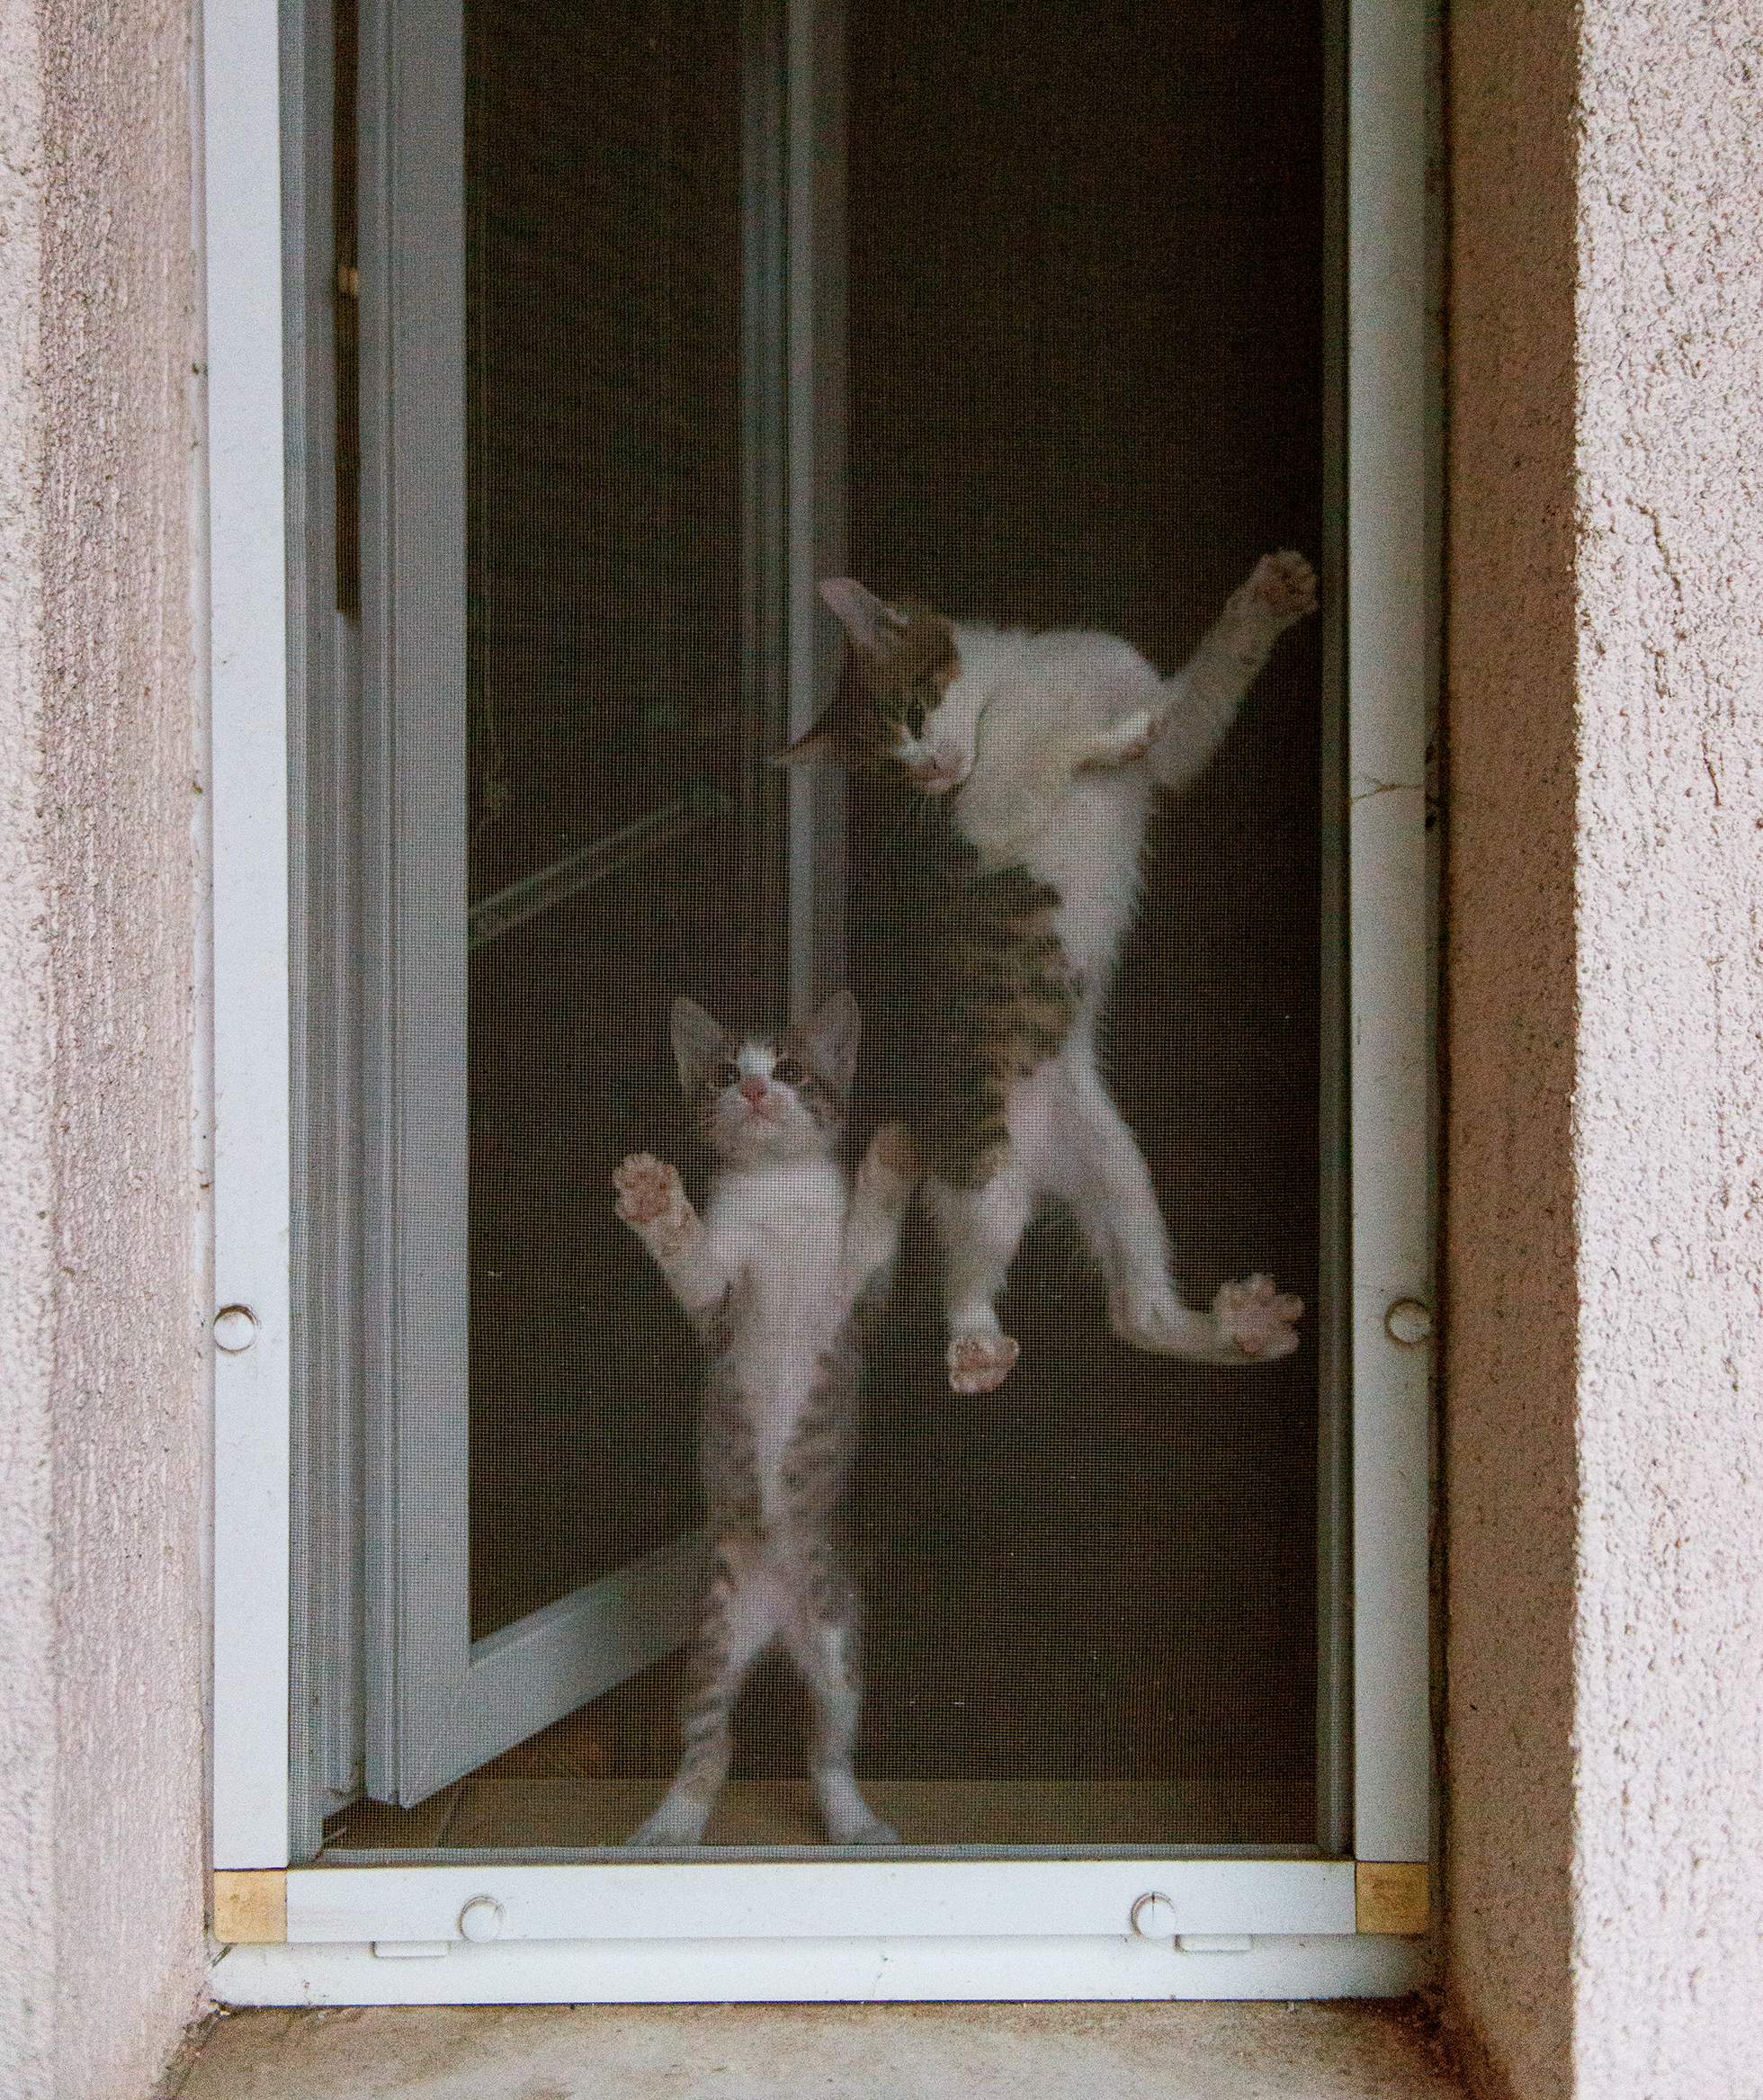 Two gray tabby kittens hanging from screen of open window